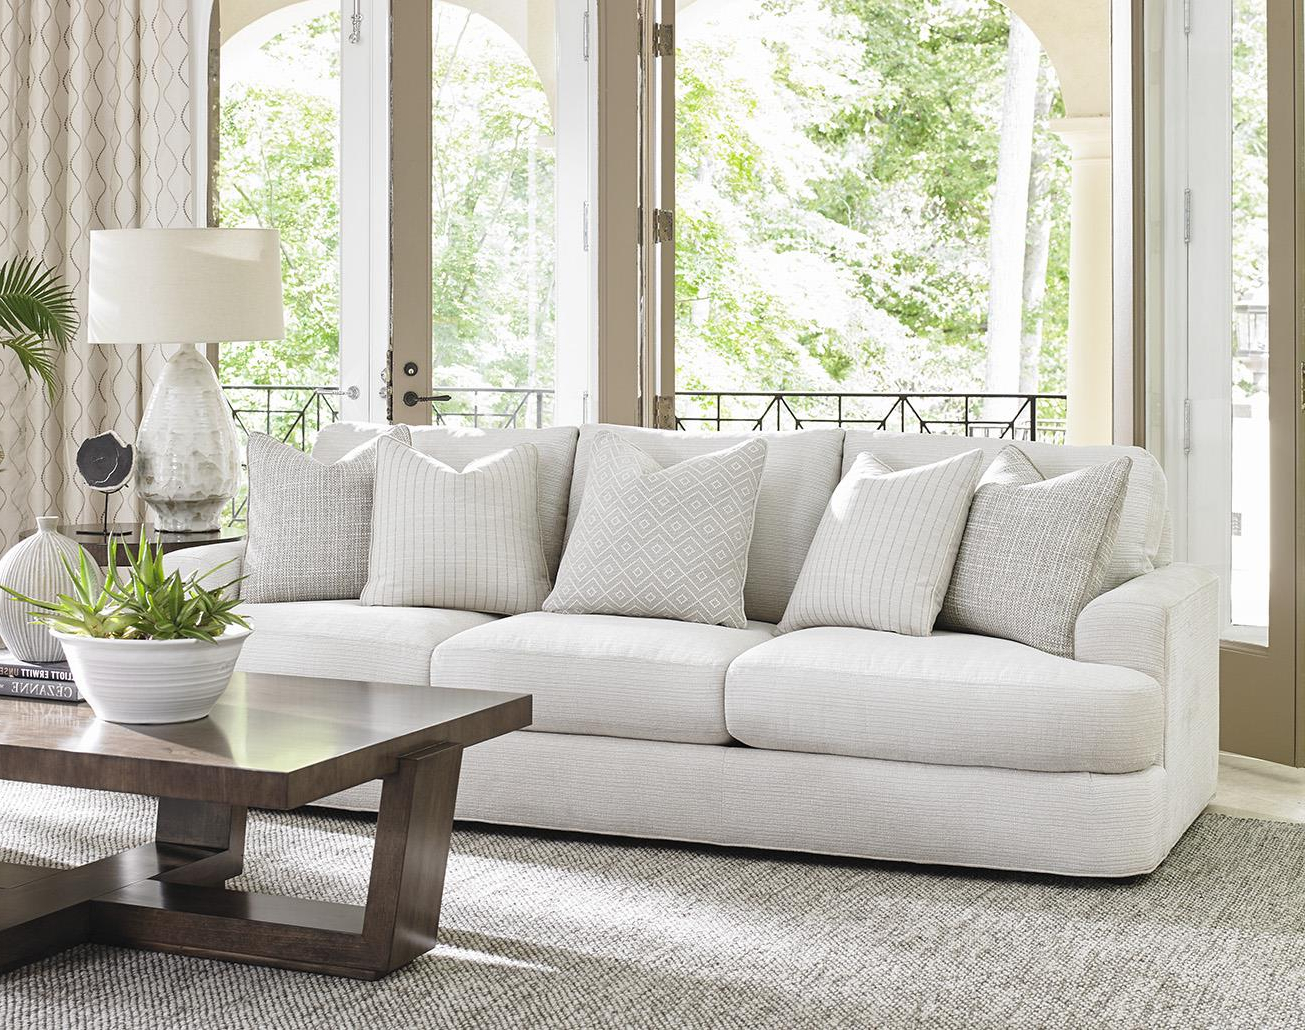 Lexington Laurel Canyon Halandale Contemporary Sofa With Pertaining To Current Laurel Gray Sofas (View 18 of 20)